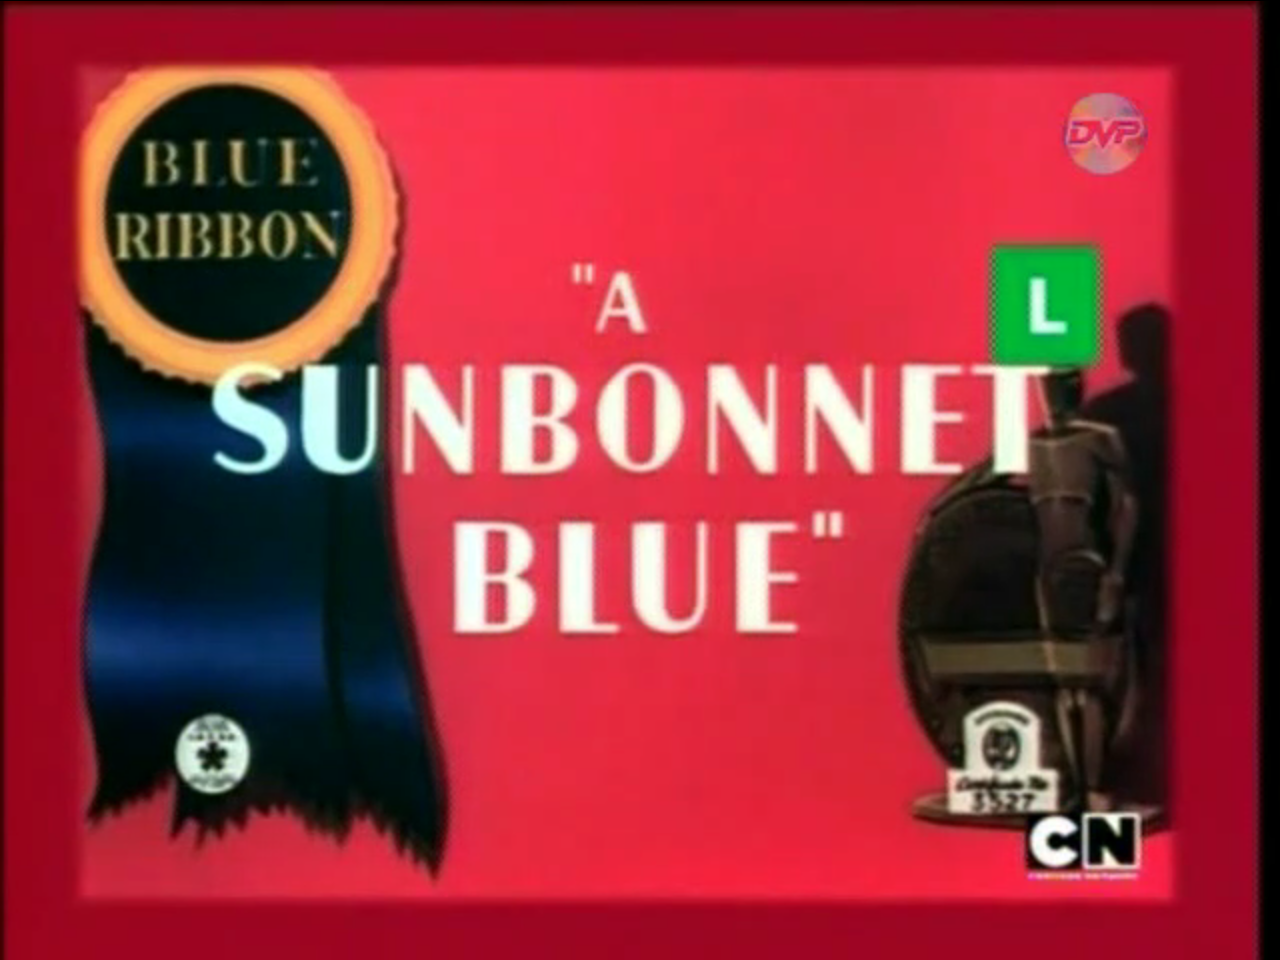 A Sunbonnet Blue (US Dubbed Version)